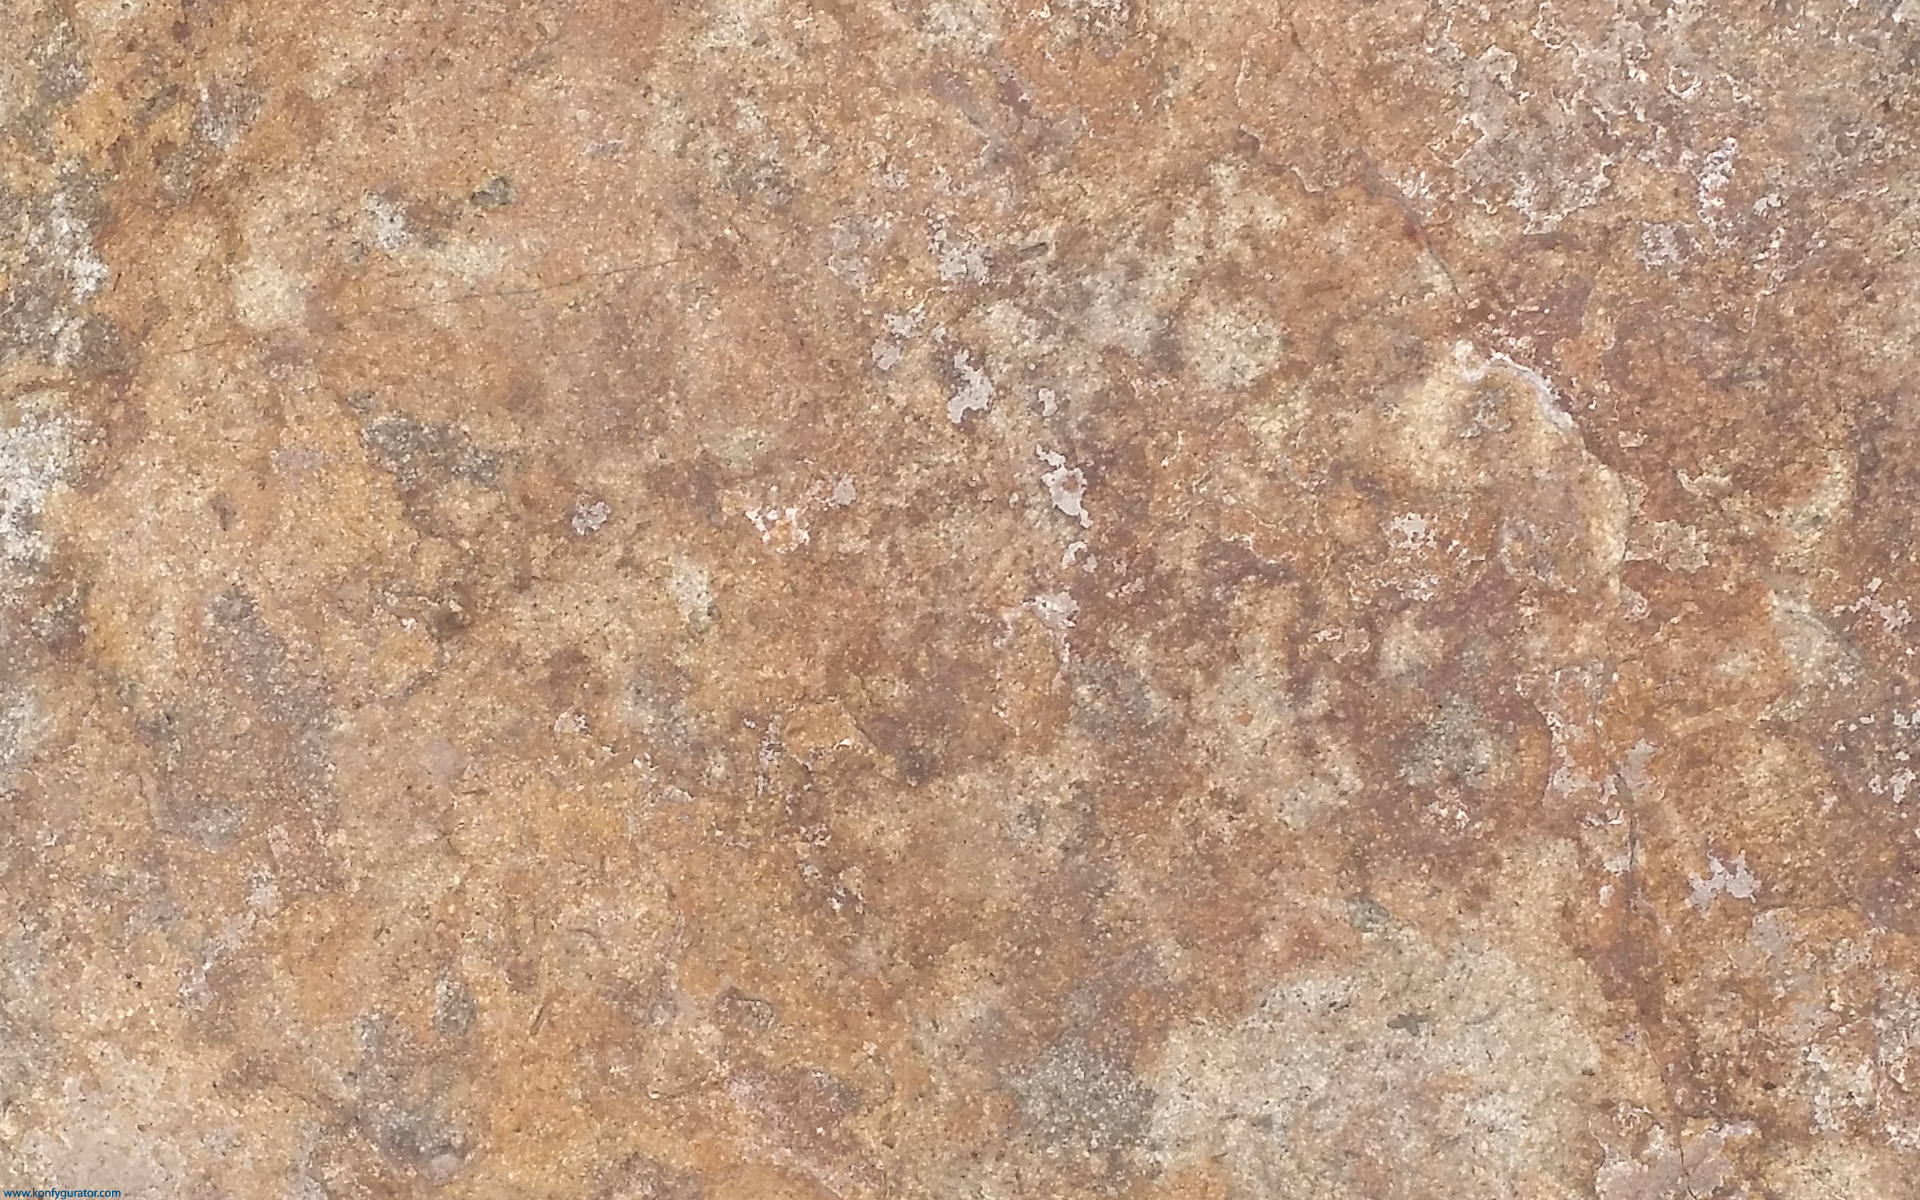 HD Wallpapers - Textures - ocher, red, stone